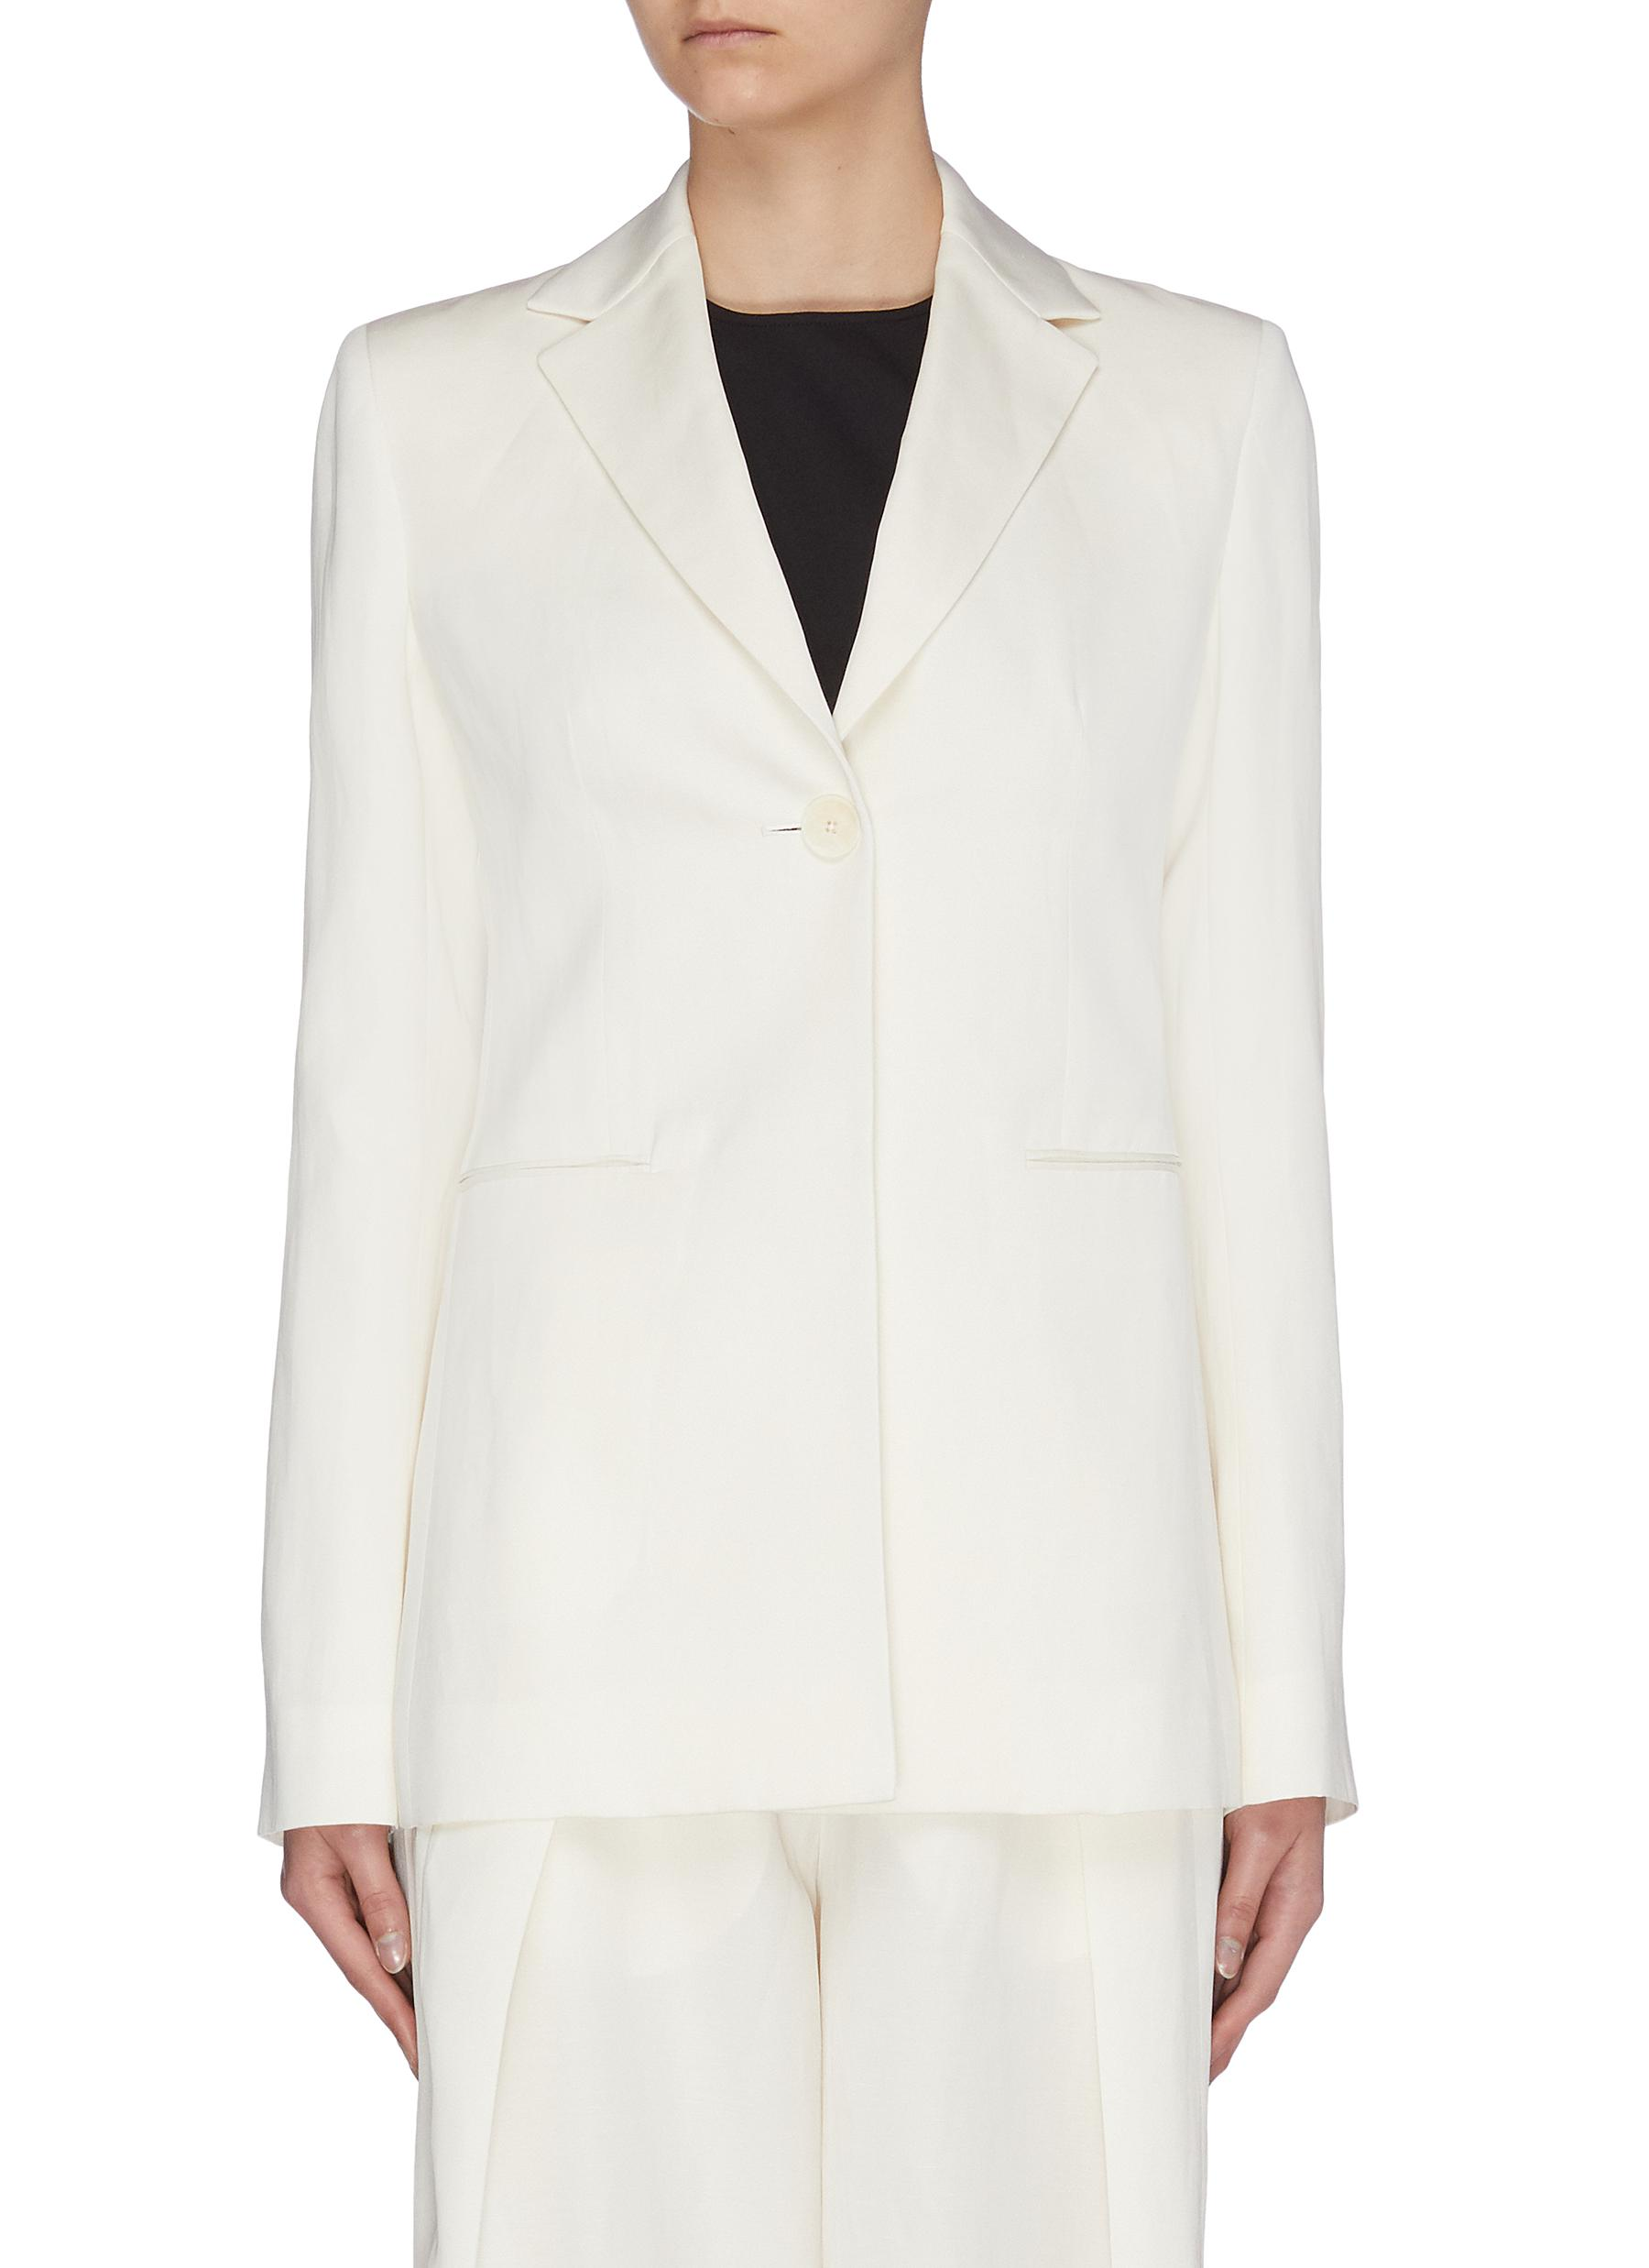 Buy The Row Blazers 'Kiro' notched lapel silk-linen blazer